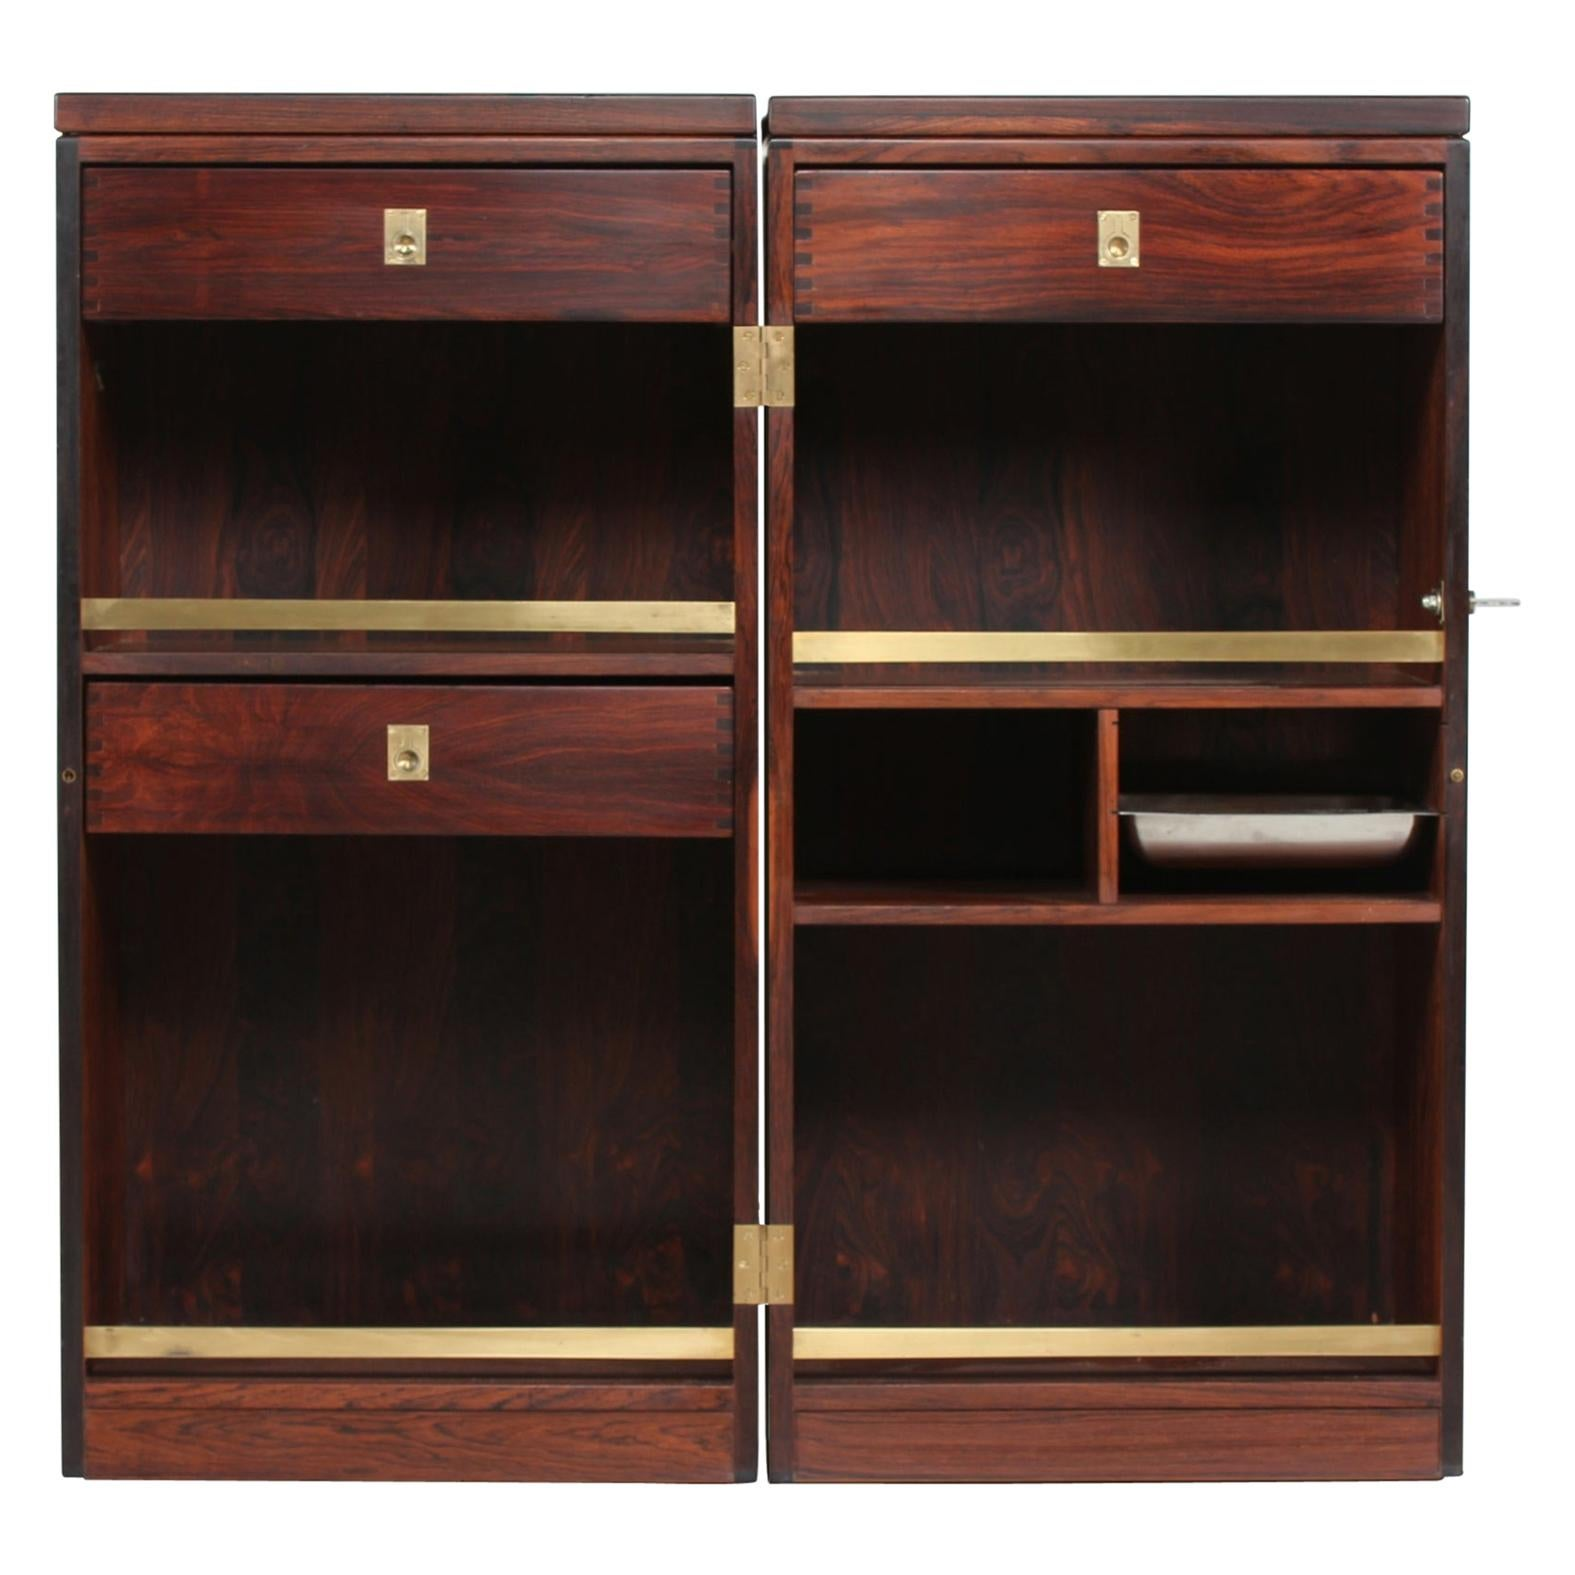 Danish Modern Rosewood Captains Bar by Reno Wahl Iversen Made by Dyrlund, 1970s